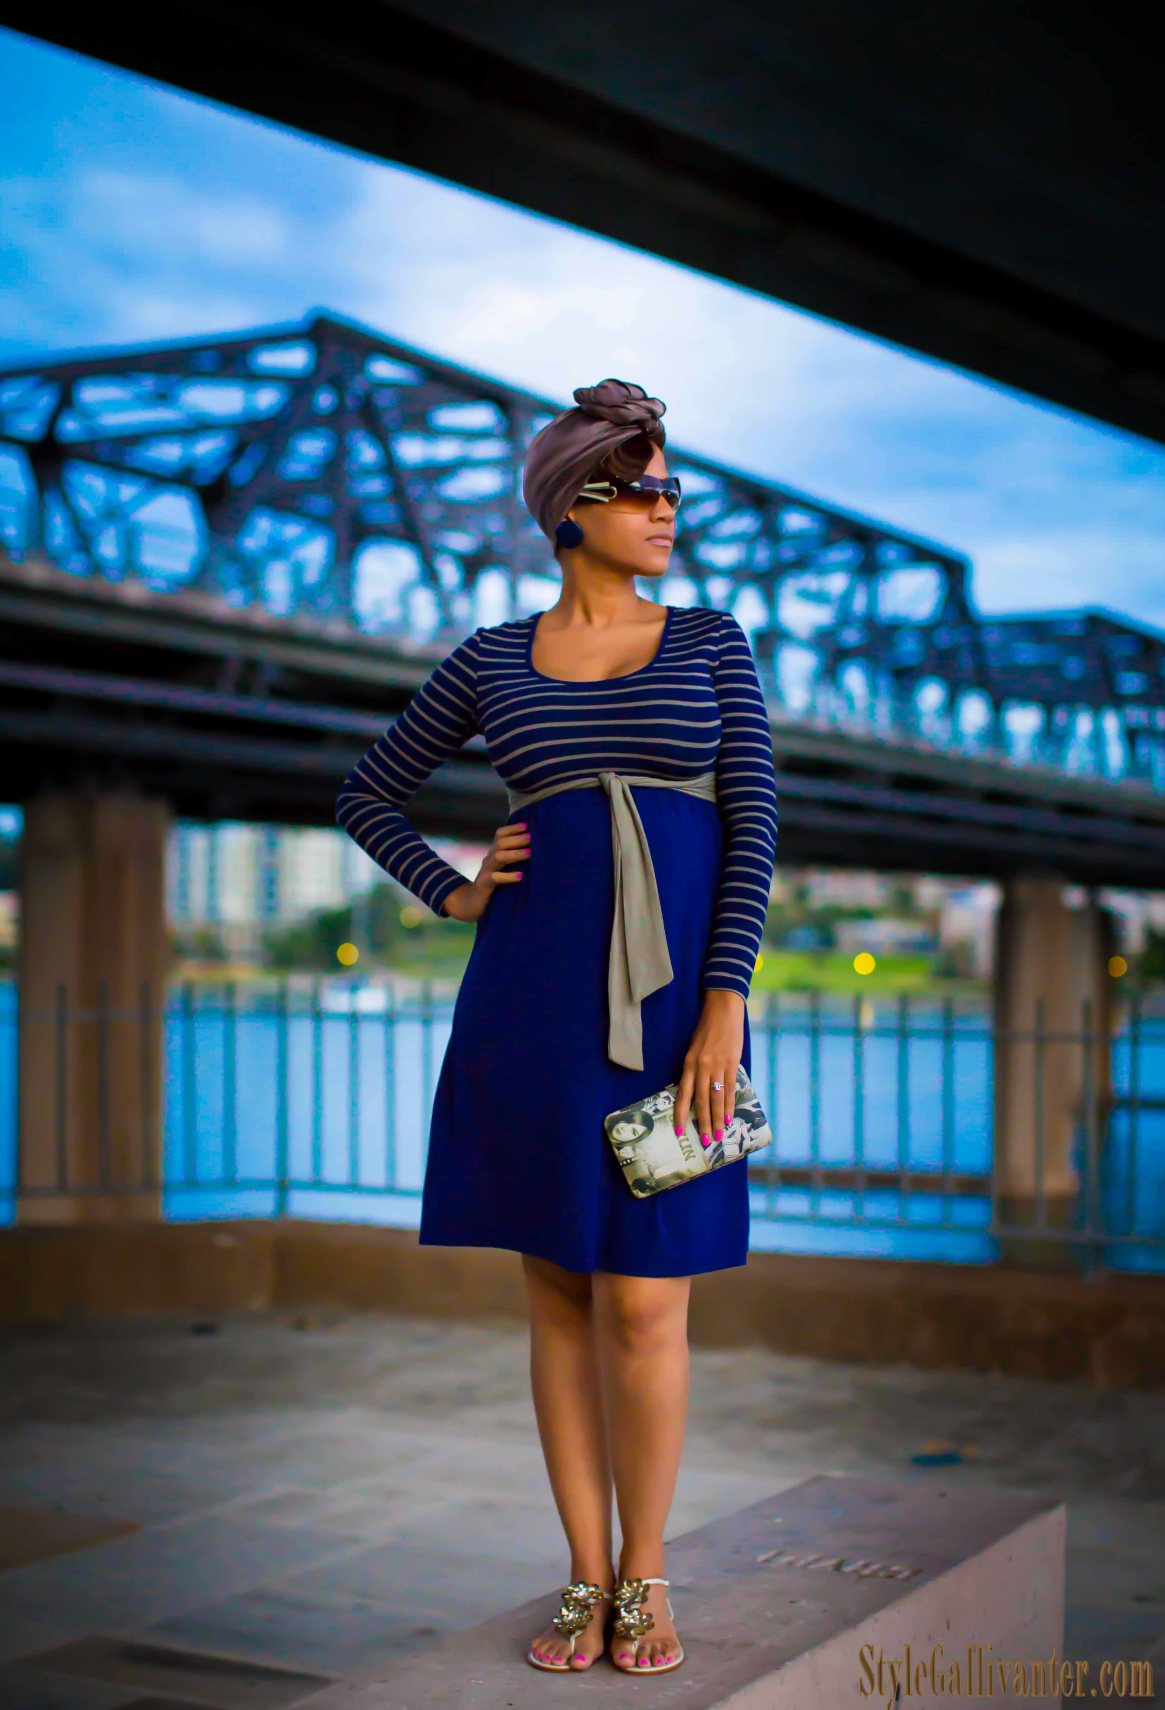 eve-of-eden-maternity_maternity-sale_maternity-sale-online_best-maternity-wear_best-maternity-online-stores_ best-new-personal-style-blogs-2014_best-personal-style-bloggers-melbourne-8